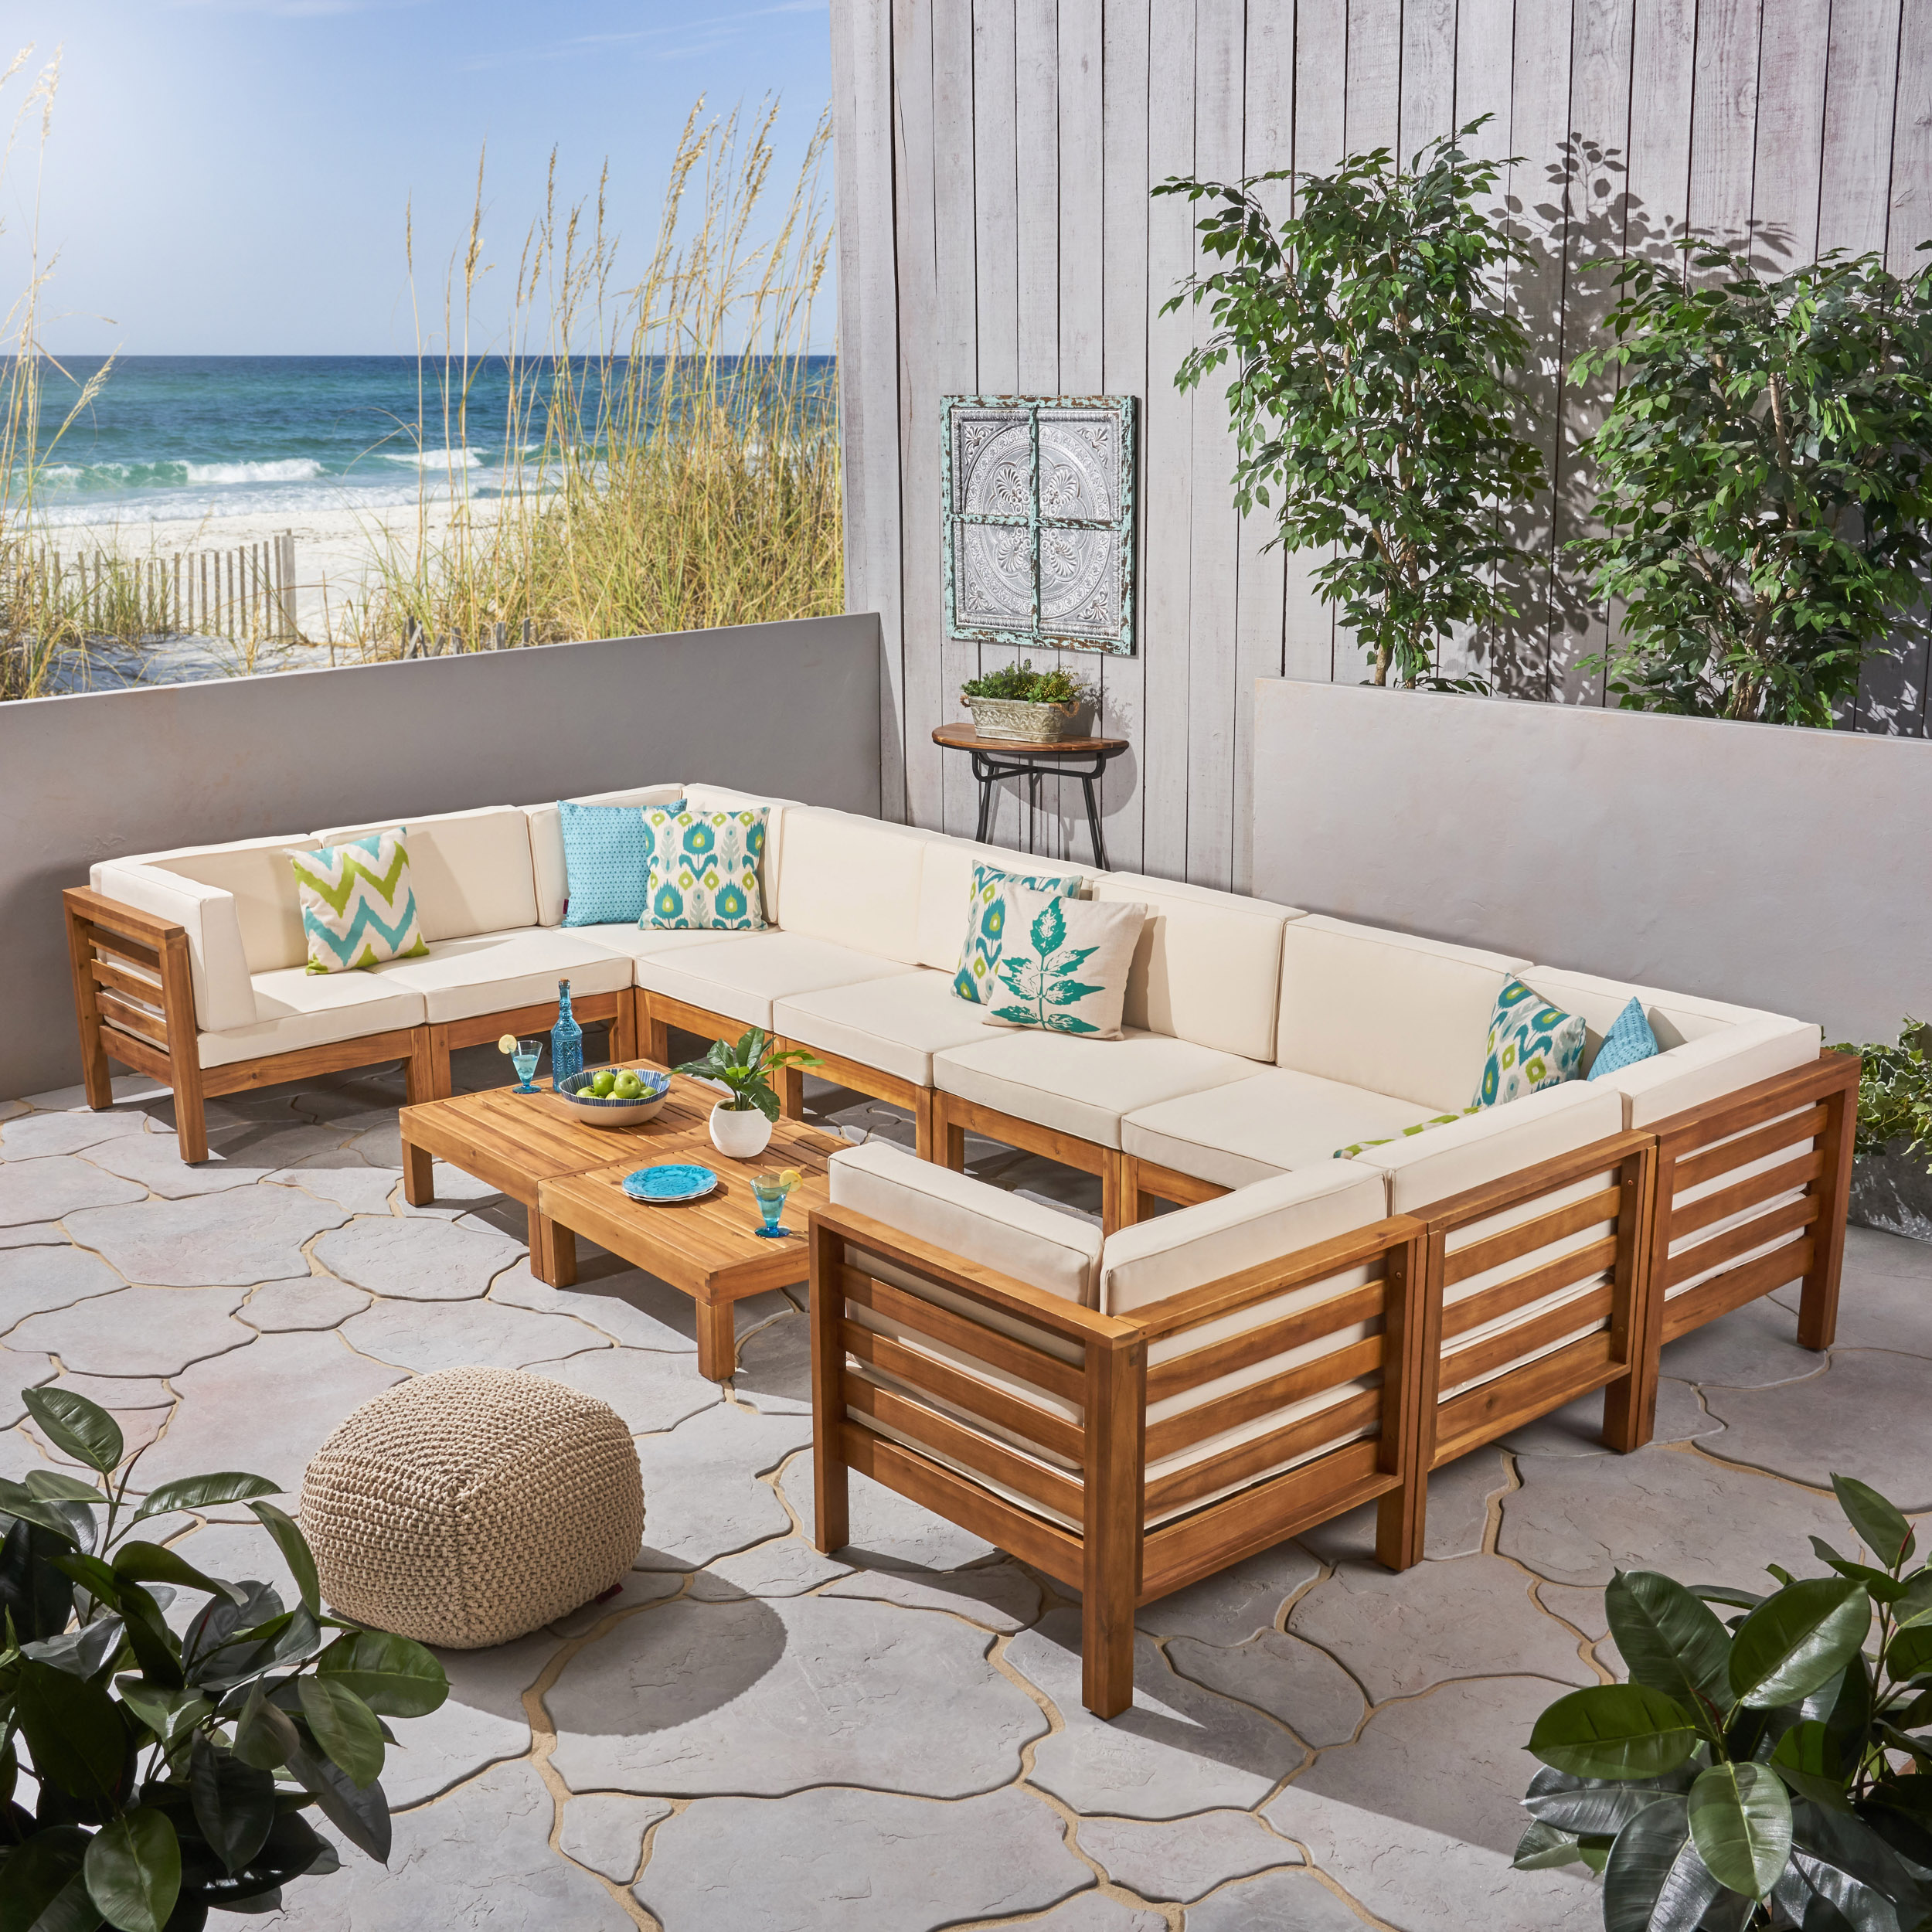 Frankie Outdoor 12 Piece Acacia Wood U-Shaped Sectional Sofa Set with Coffee Tables and Cushions, Gray, Dark Gray